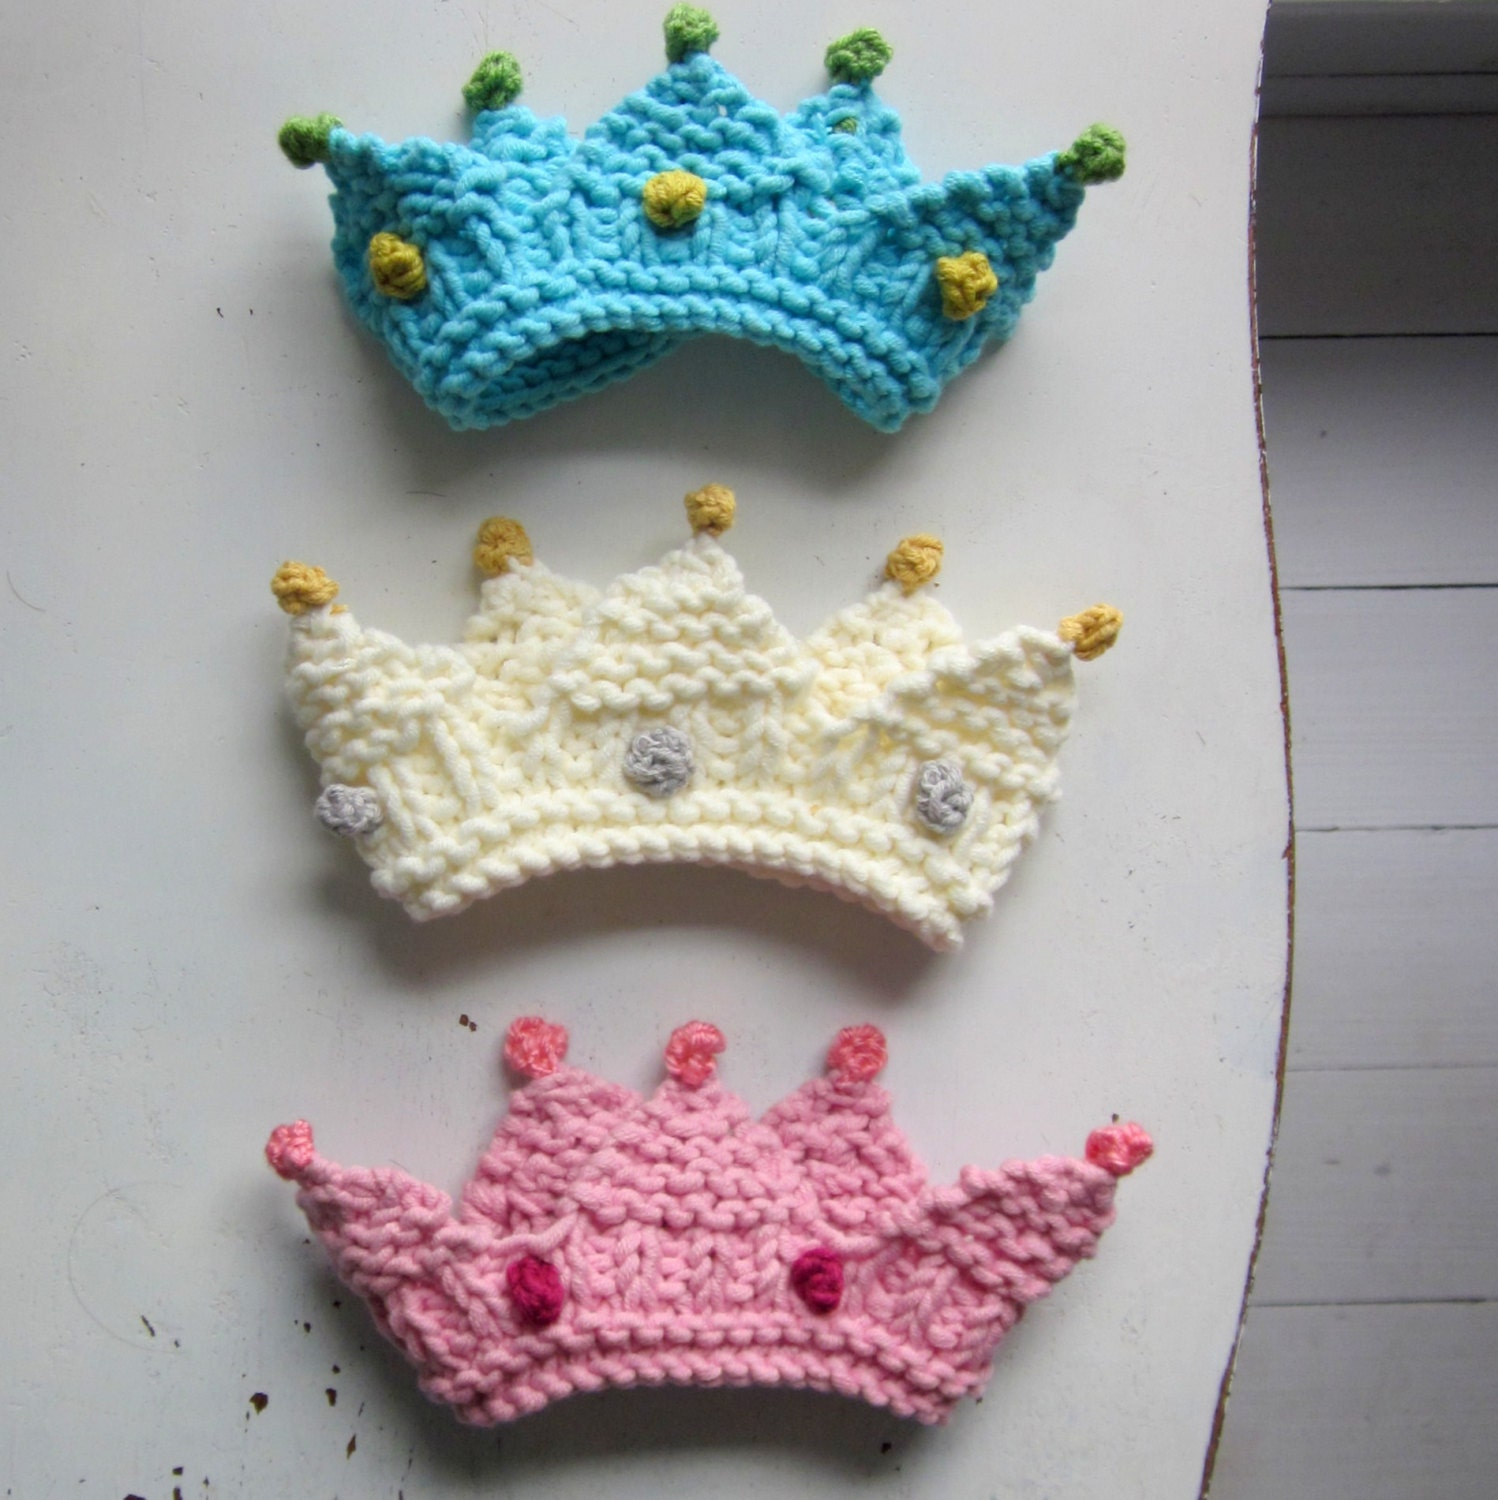 Knitting Patterns Using Baby Yarn : Royal Baby Crown Knitting Pattern photo prop bulky yarn